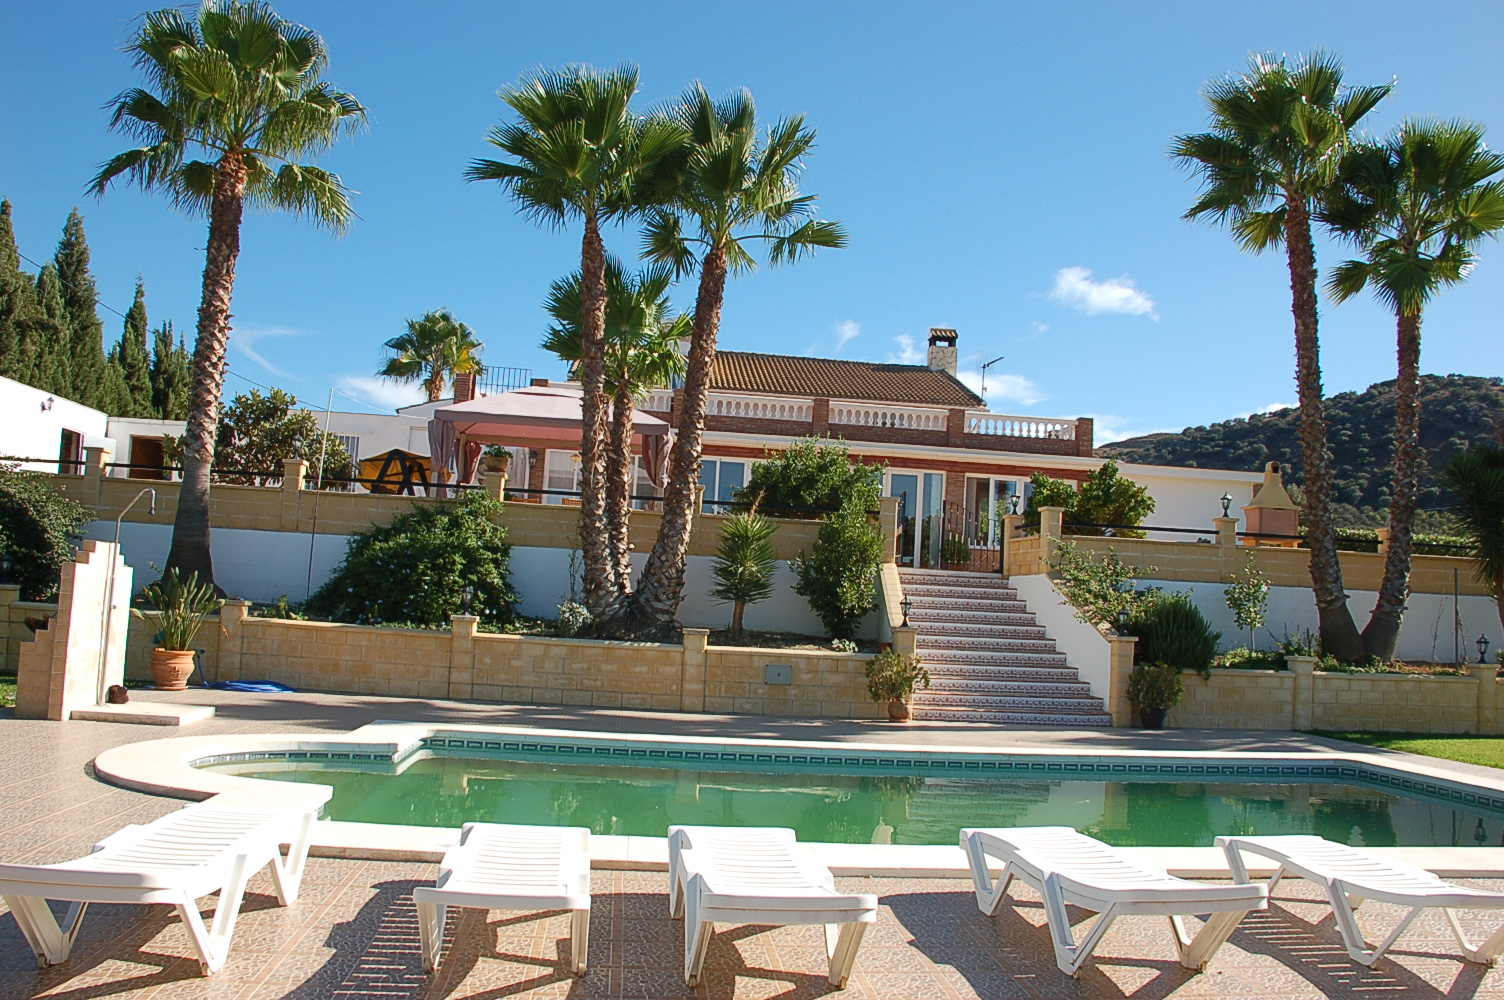 RiS 85 Lovely villa with mature gardens and land – 470,000€